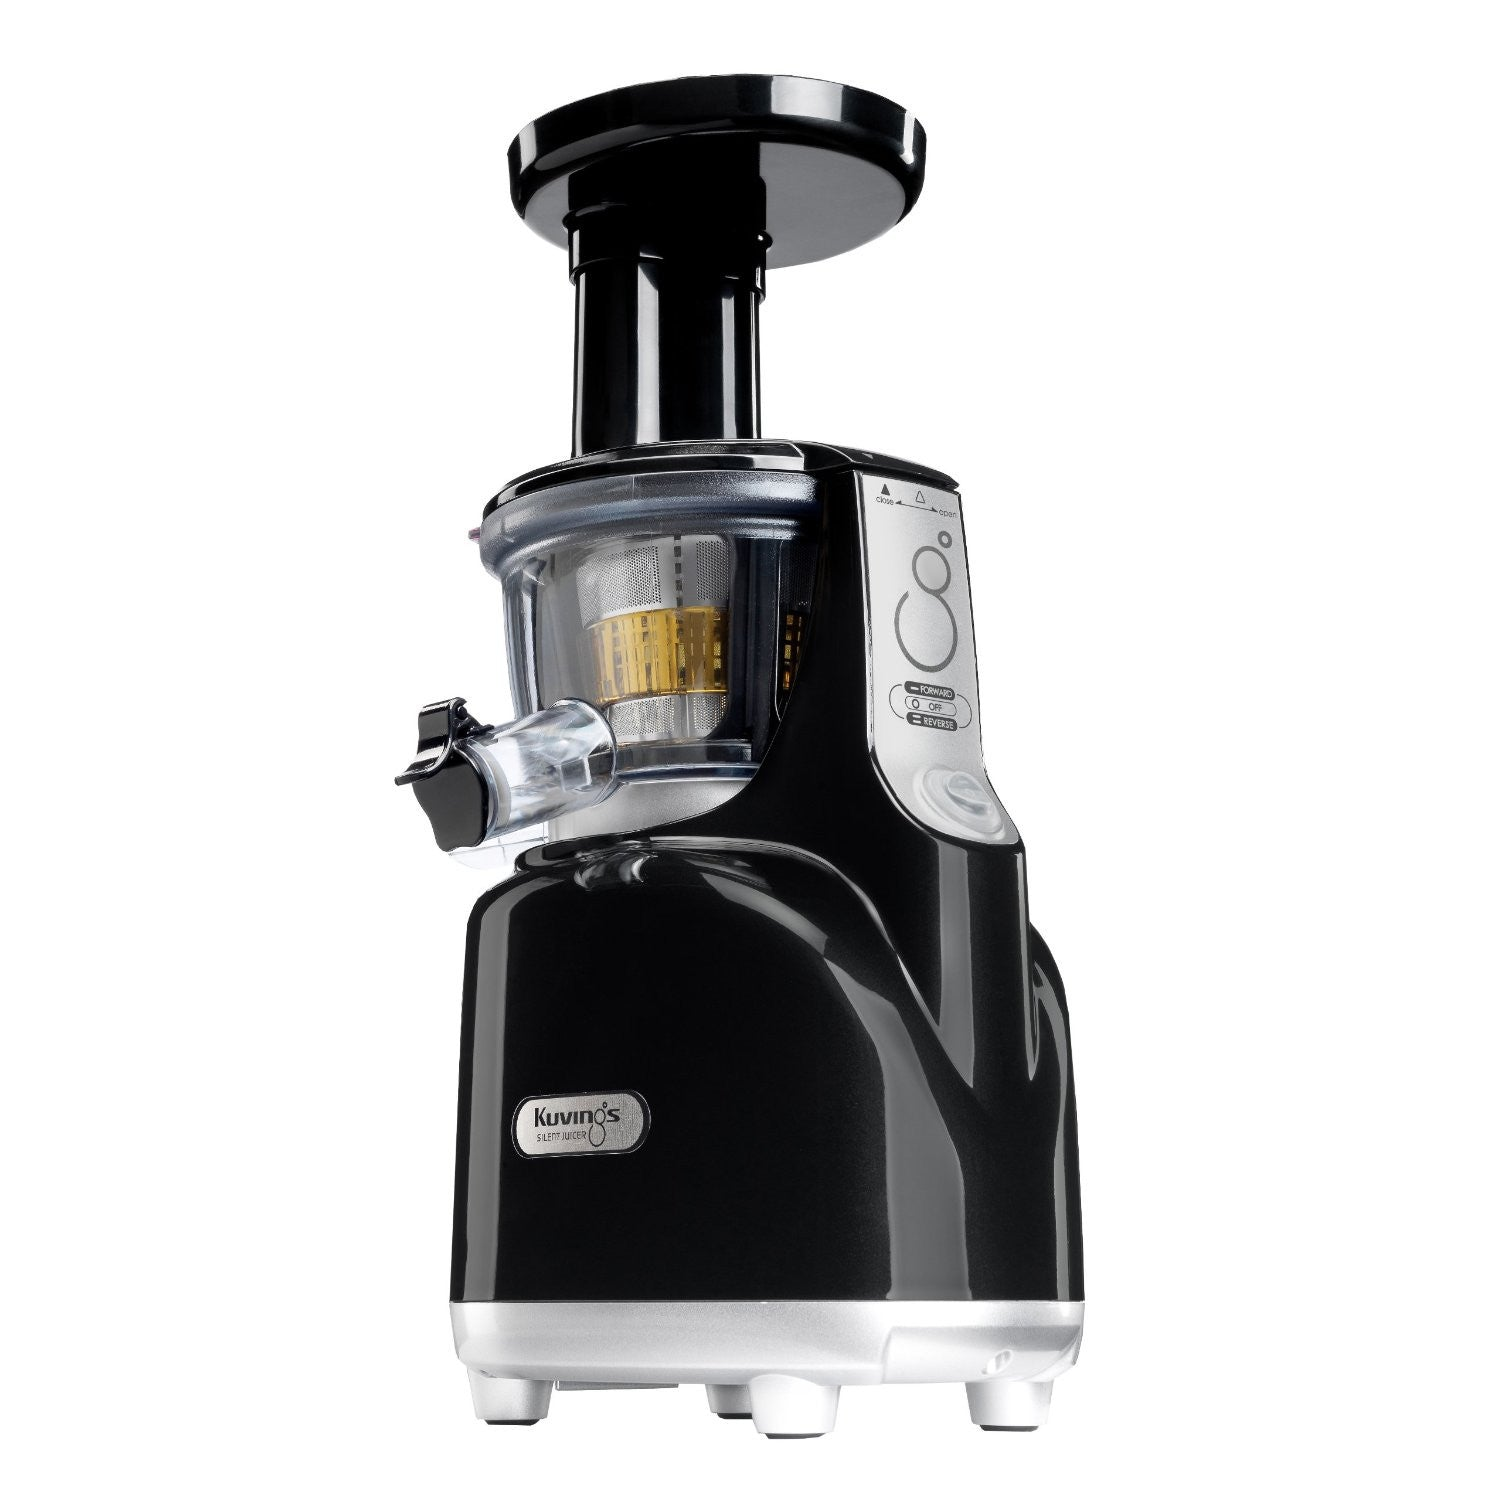 Kuvings Masticating Juicer Manual : Includes: